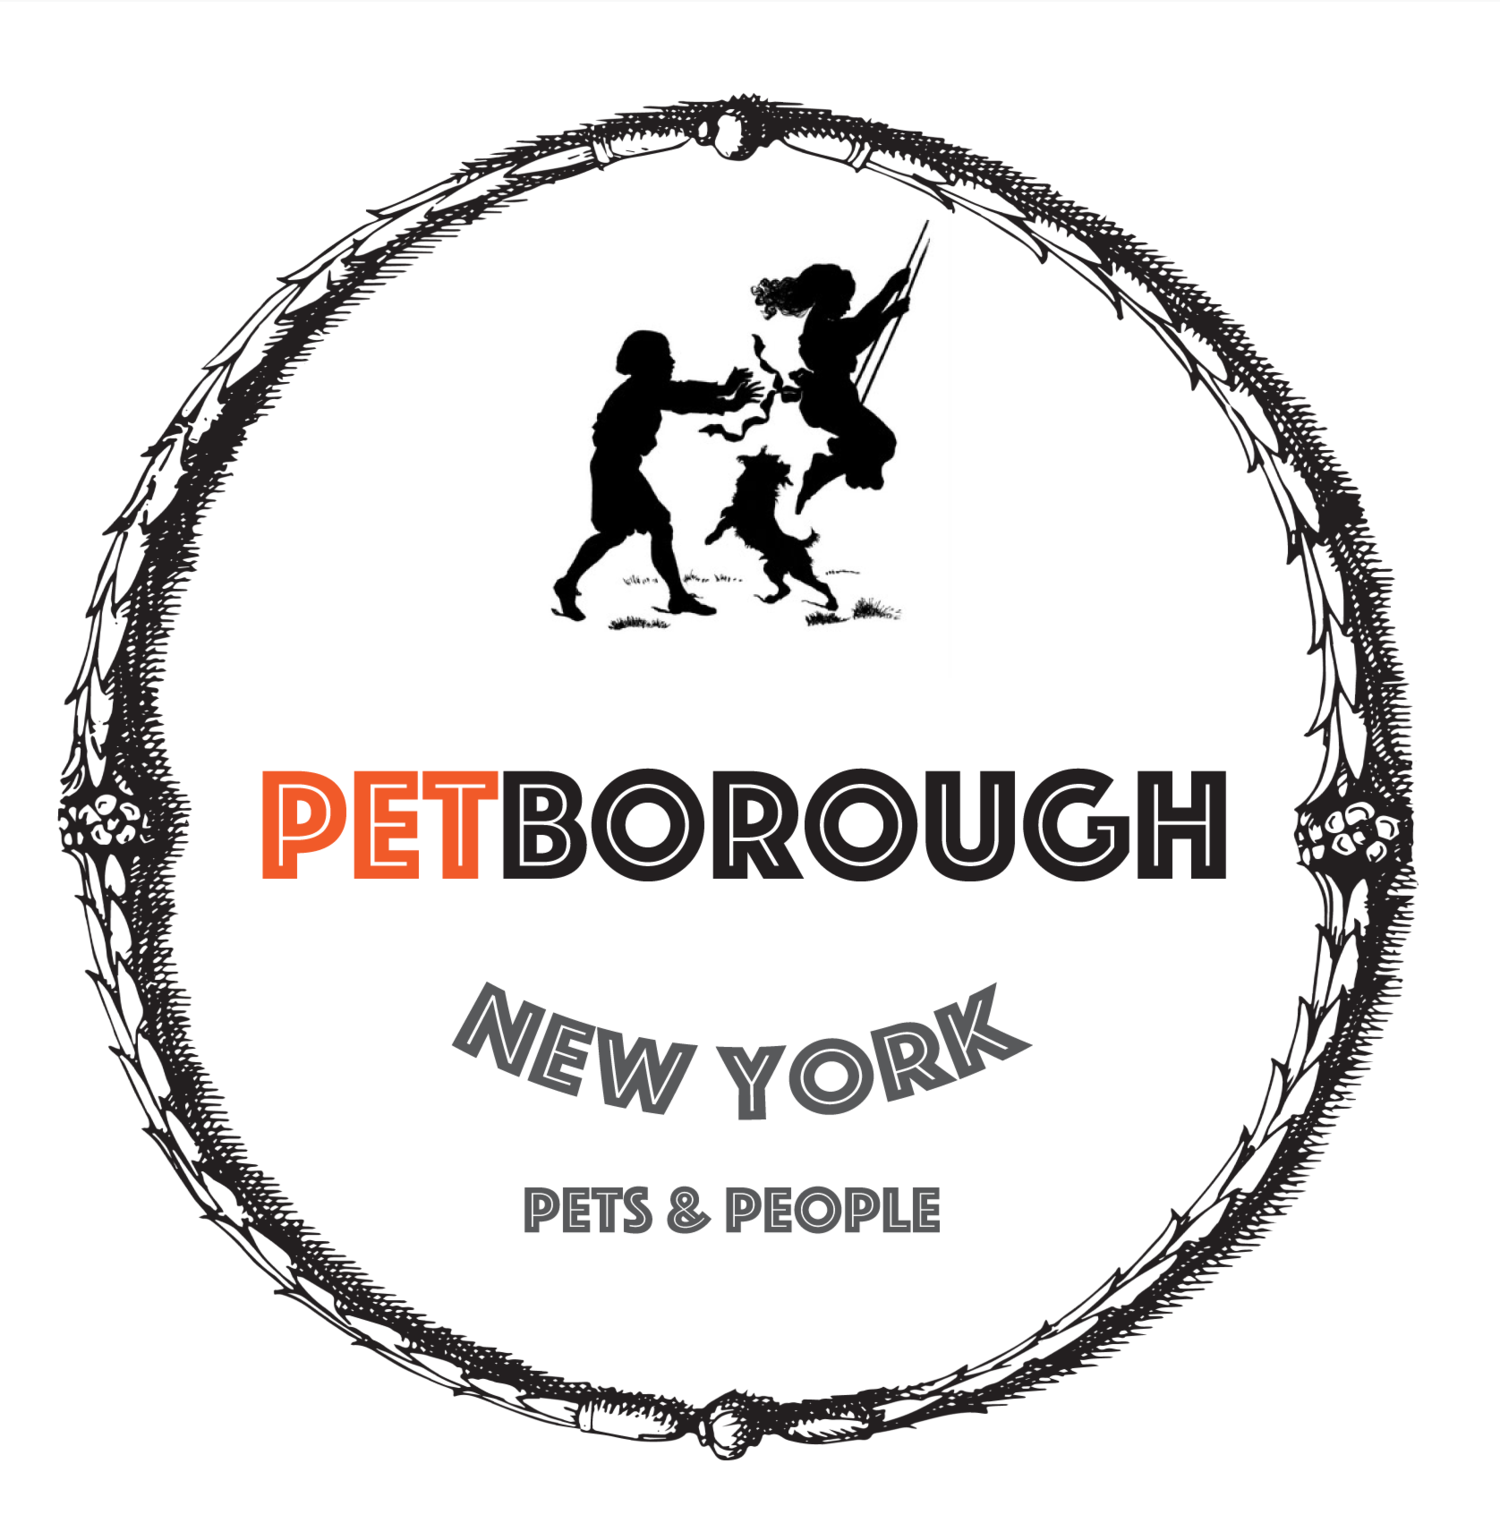 PetBorough New York